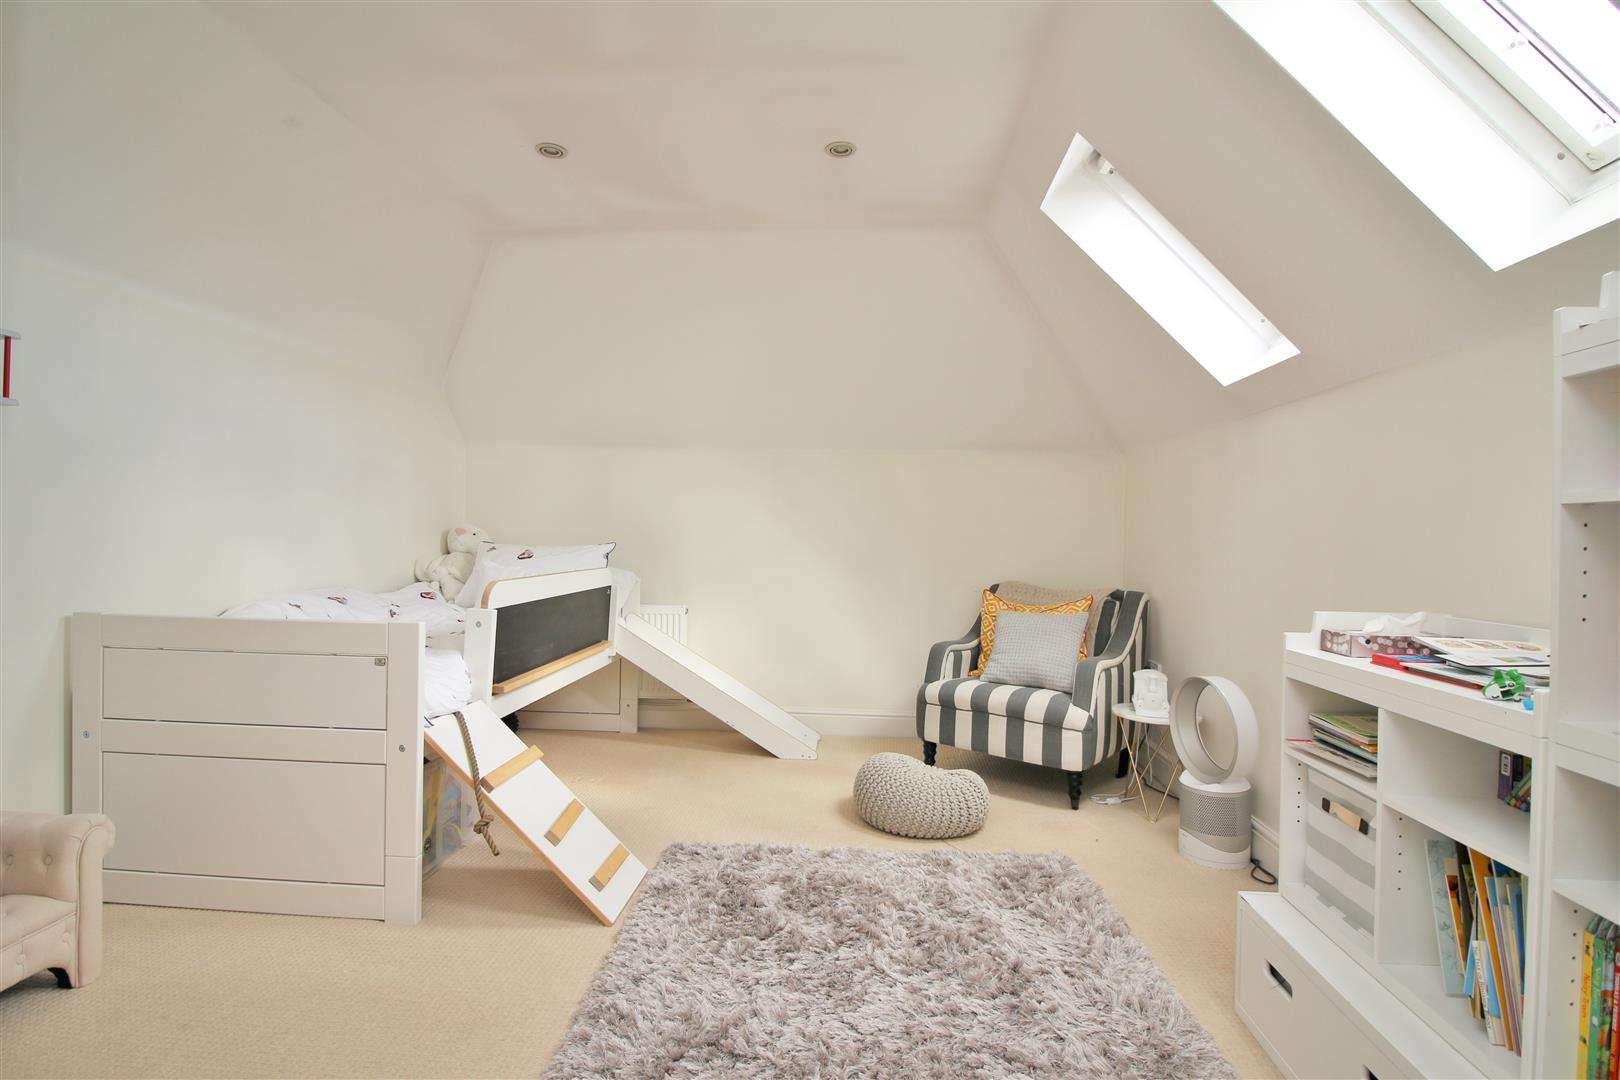 4 bed to rent in Bushey Heath - (Property Image 13)